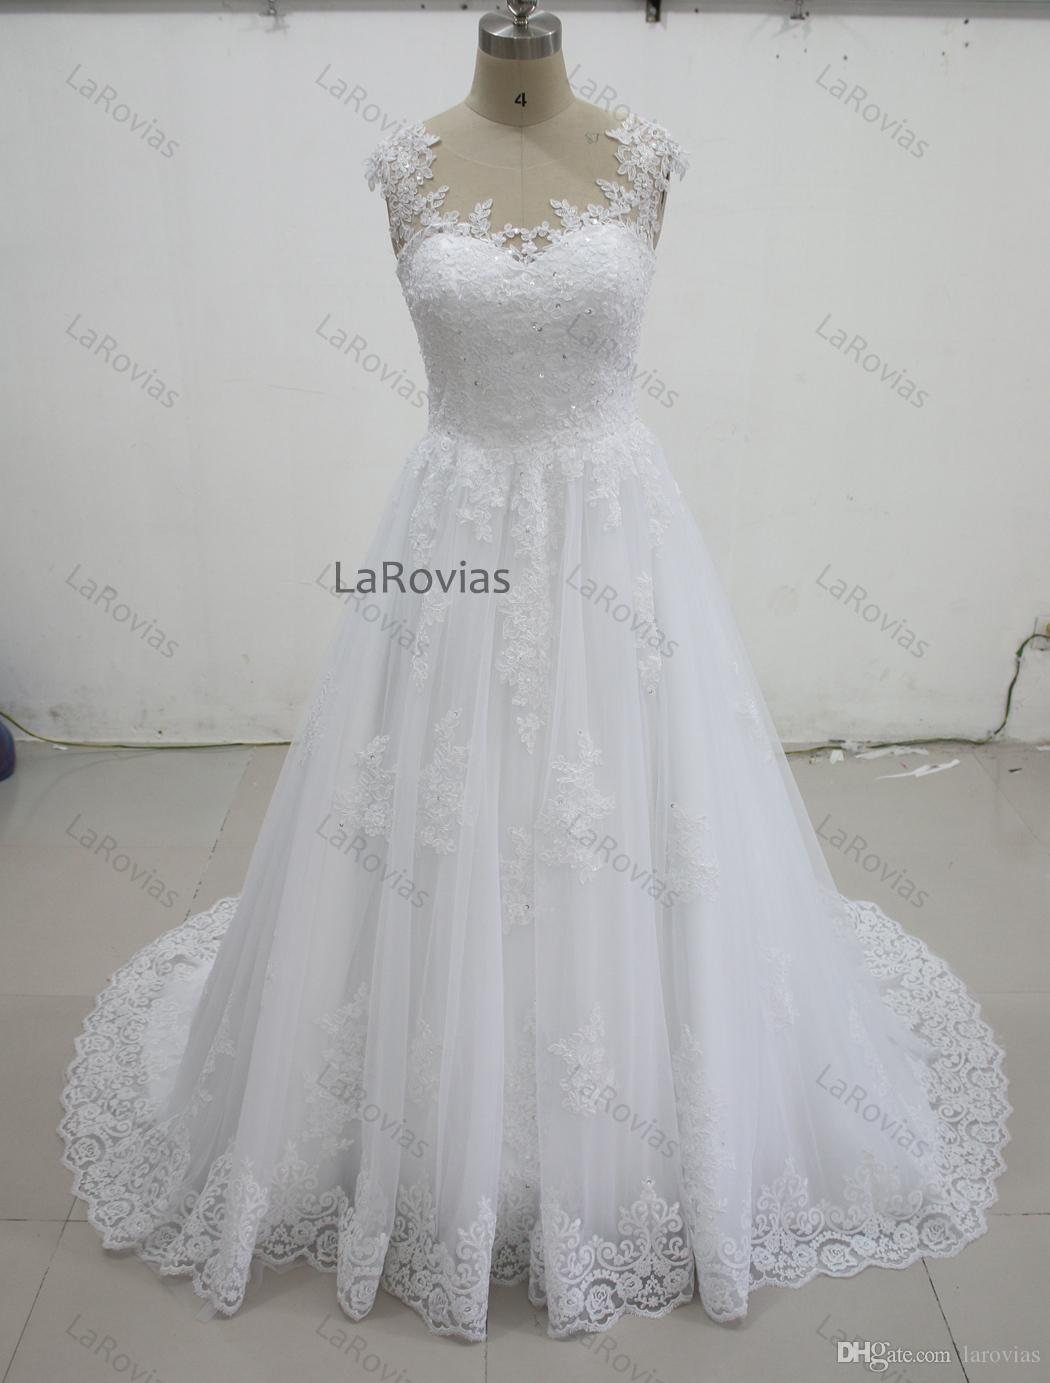 830eacf7b8d7 Cheap Casual Backless Lace Wedding Dresses Discount Garden Outdoor Wedding  Dress